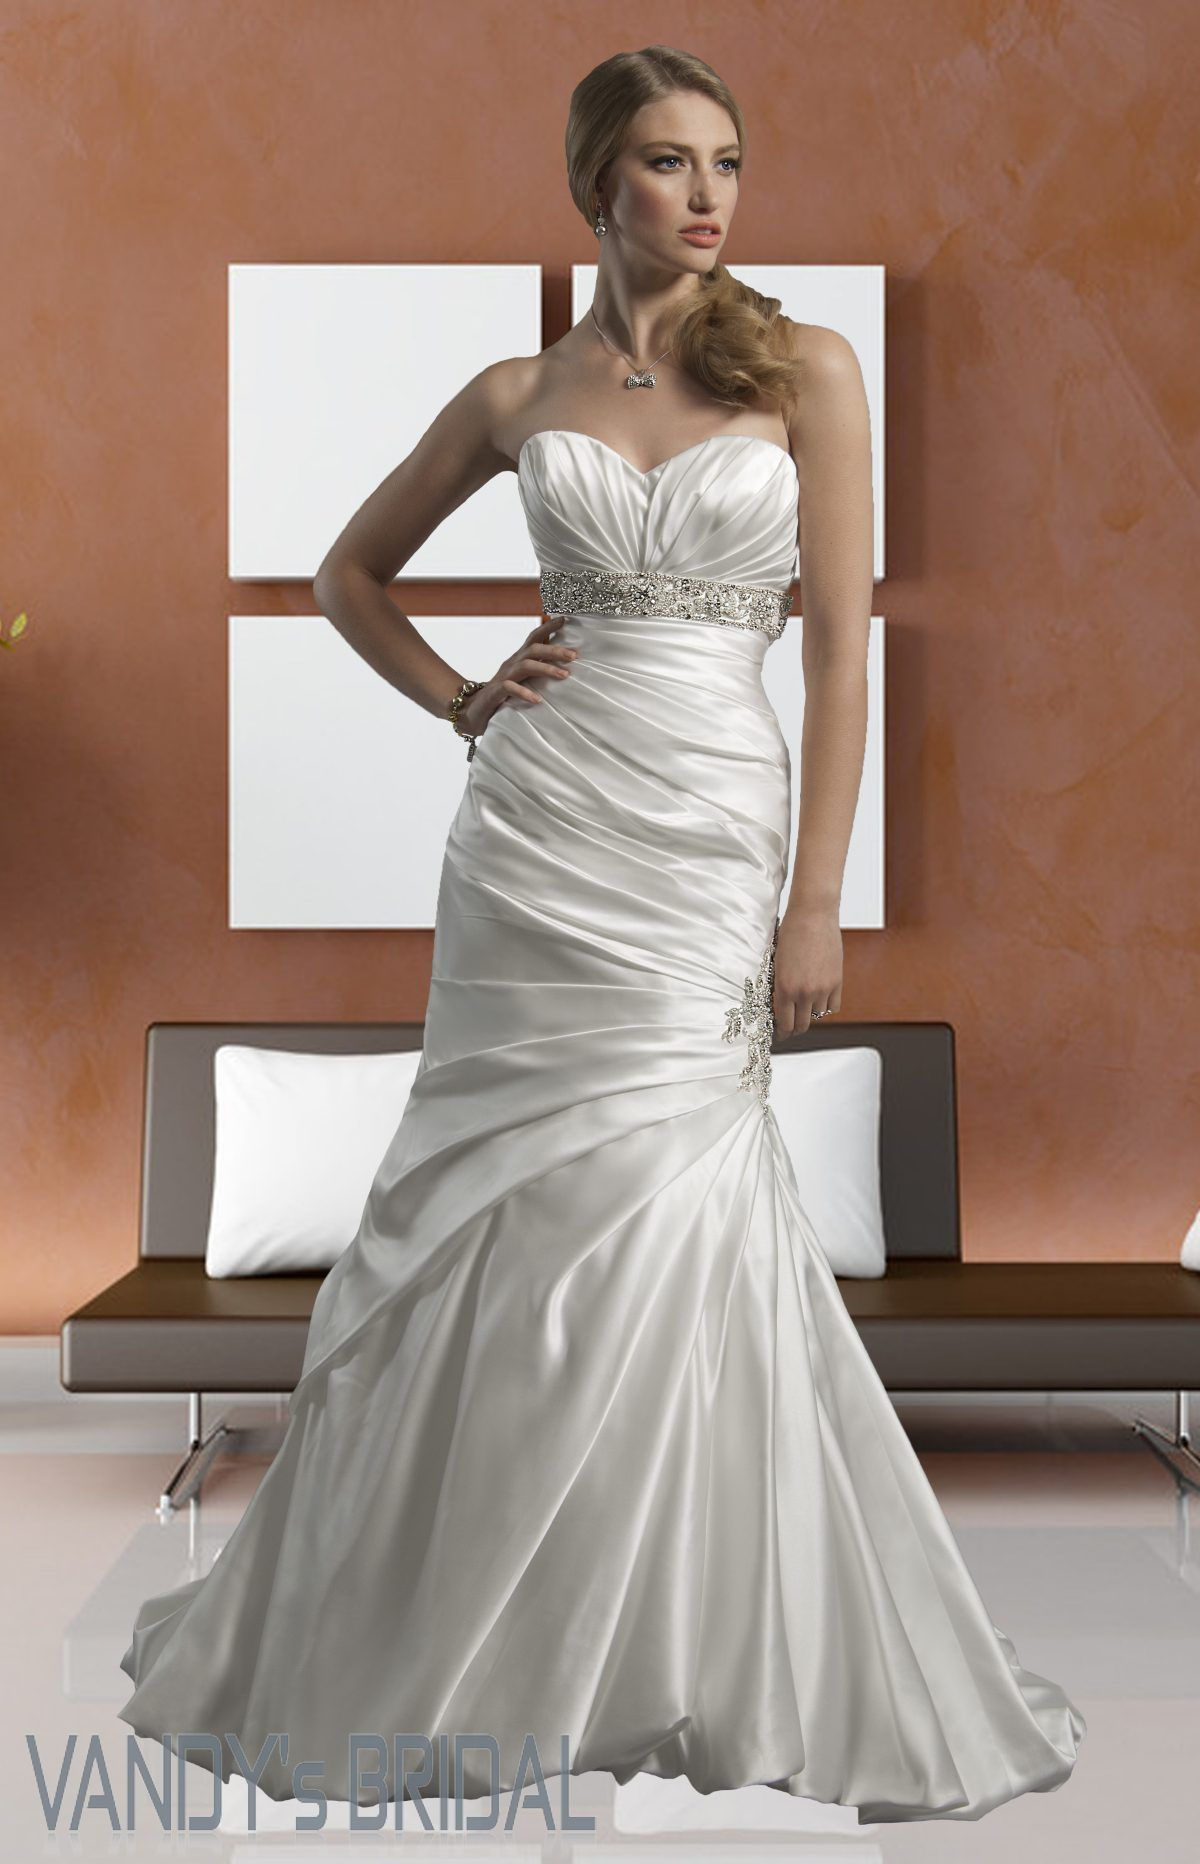 Mermaid Wedding Dresses 2013 | 2013 Trumpet / Mermaid Style Sweetheart  Neckline Sleeveless Chapel .